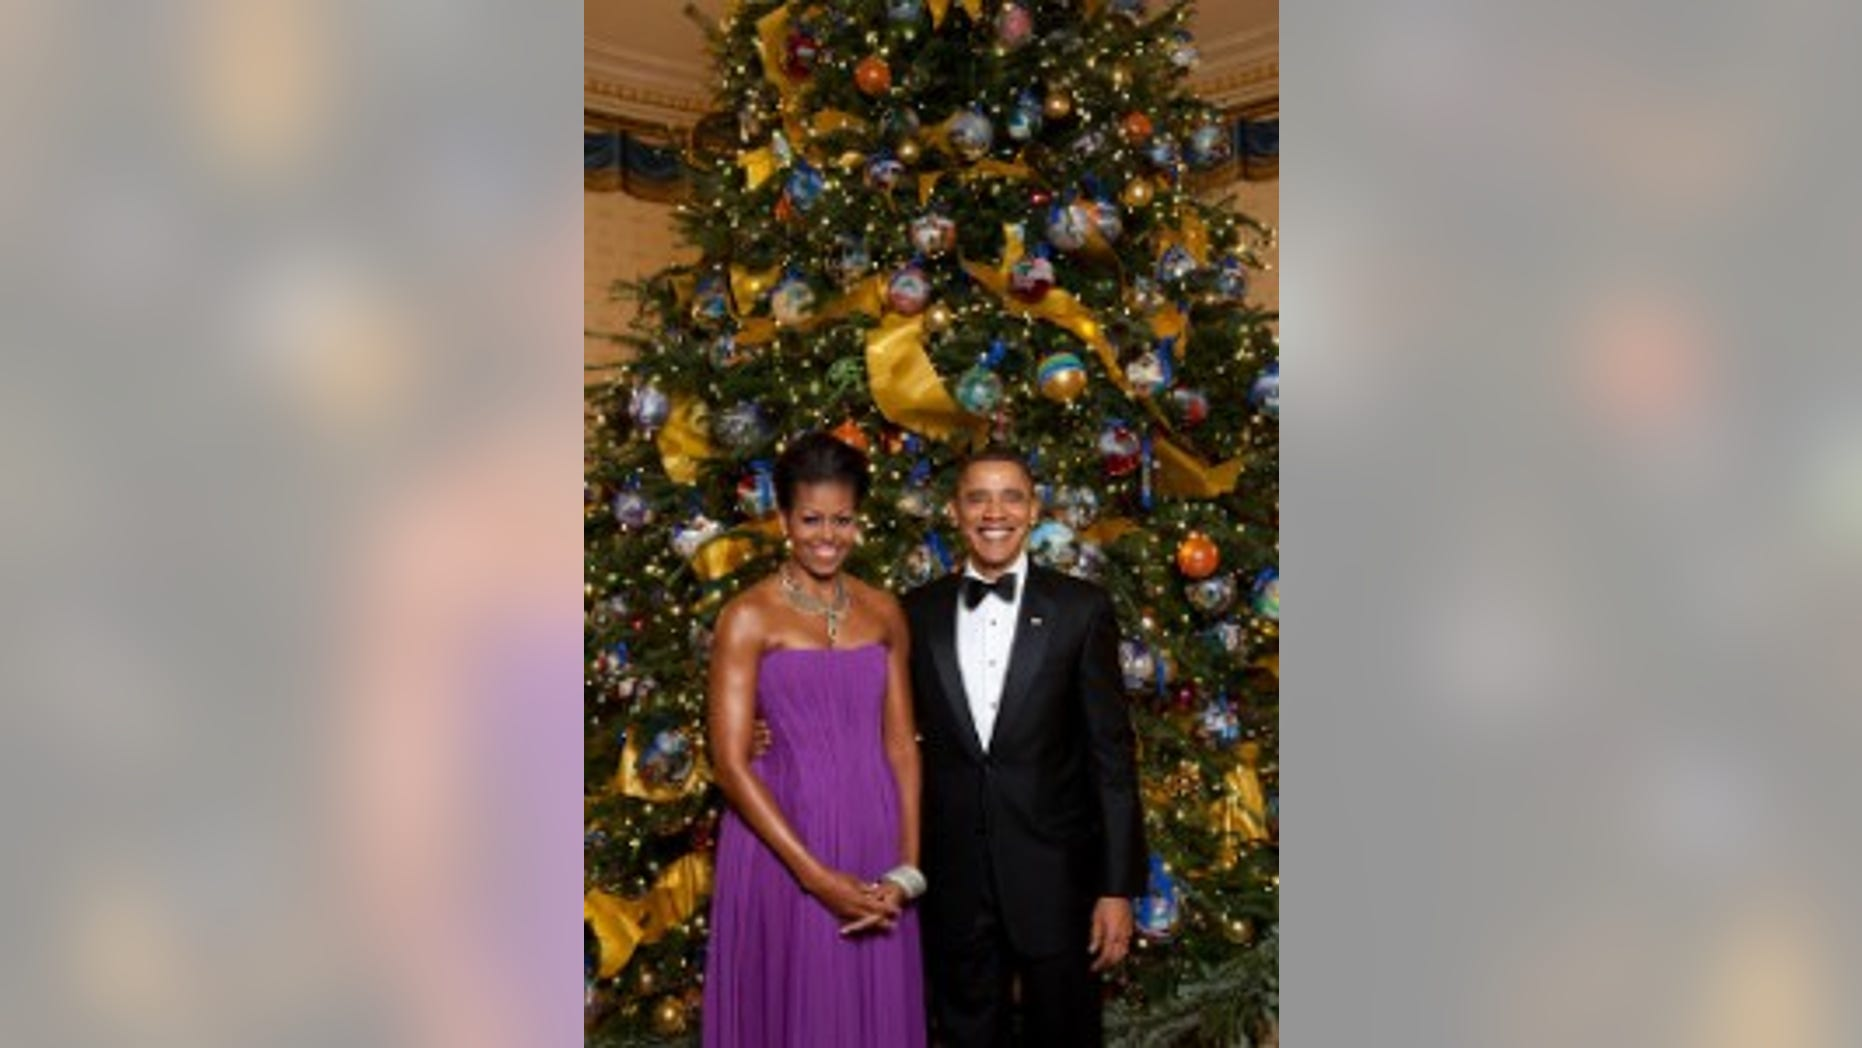 President Barack Obama and First Lady Michelle Obama pose for a formal portrait in front of the official White House Christmas Tree in the Blue Room of the White House, Dec. 6, 2009. (Official White House Photo by Lawrence Jackson)